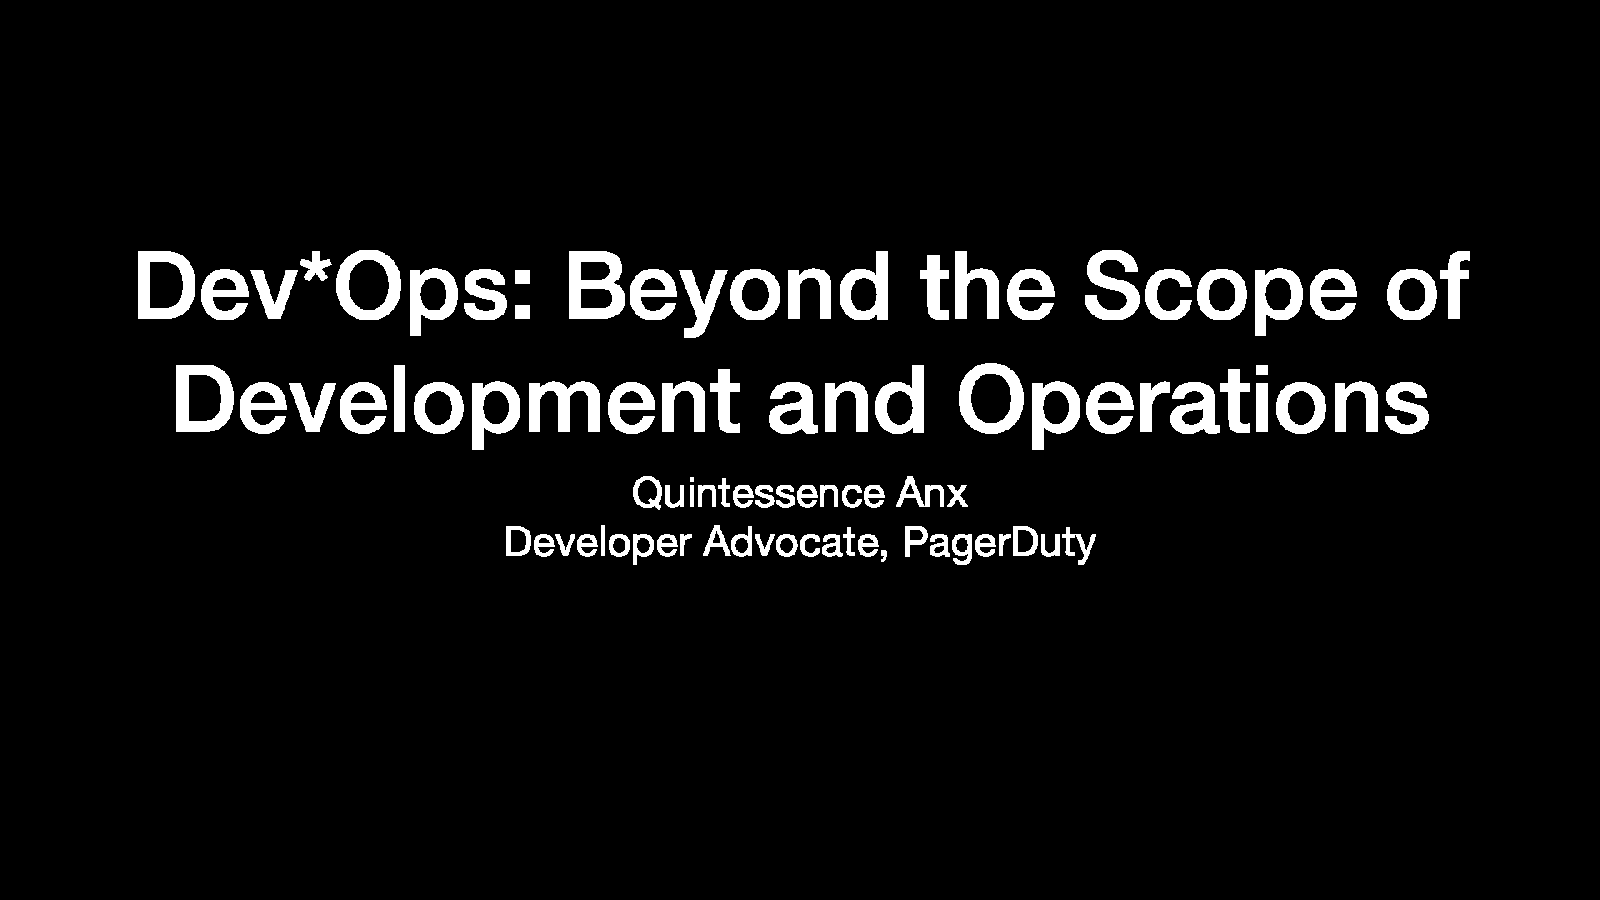 Dev*Ops: Beyond the Scope of Development and Operations by Quintessence Anx